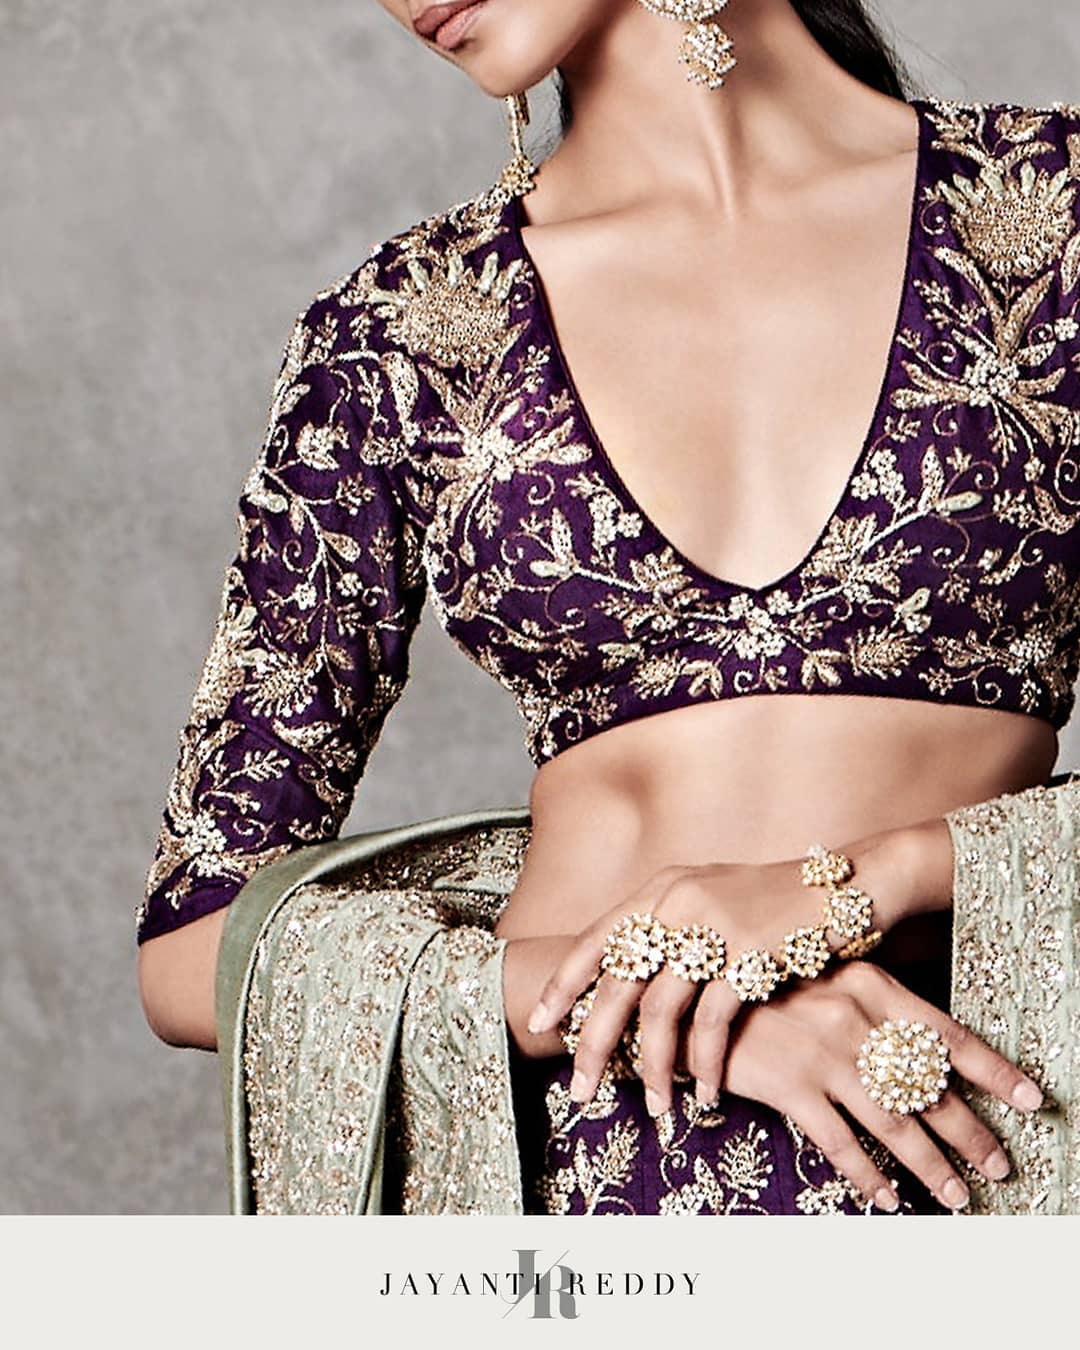 very aesthetic detail of the Jayanti Reddy blouse infuses old-world intricacy with contemporary glamour. The cuts may be sharp and sleek but they're softened with the poetry and romance of traditional colours and historical embroidery styles.  Whatsapp or DM us for more details. Hyderabad +91 9121432255 (Neelu) Delhi +91 83739 92273 (Shalini) . . | blouses online | blouses online | blouse ke designs | 2020-12-05